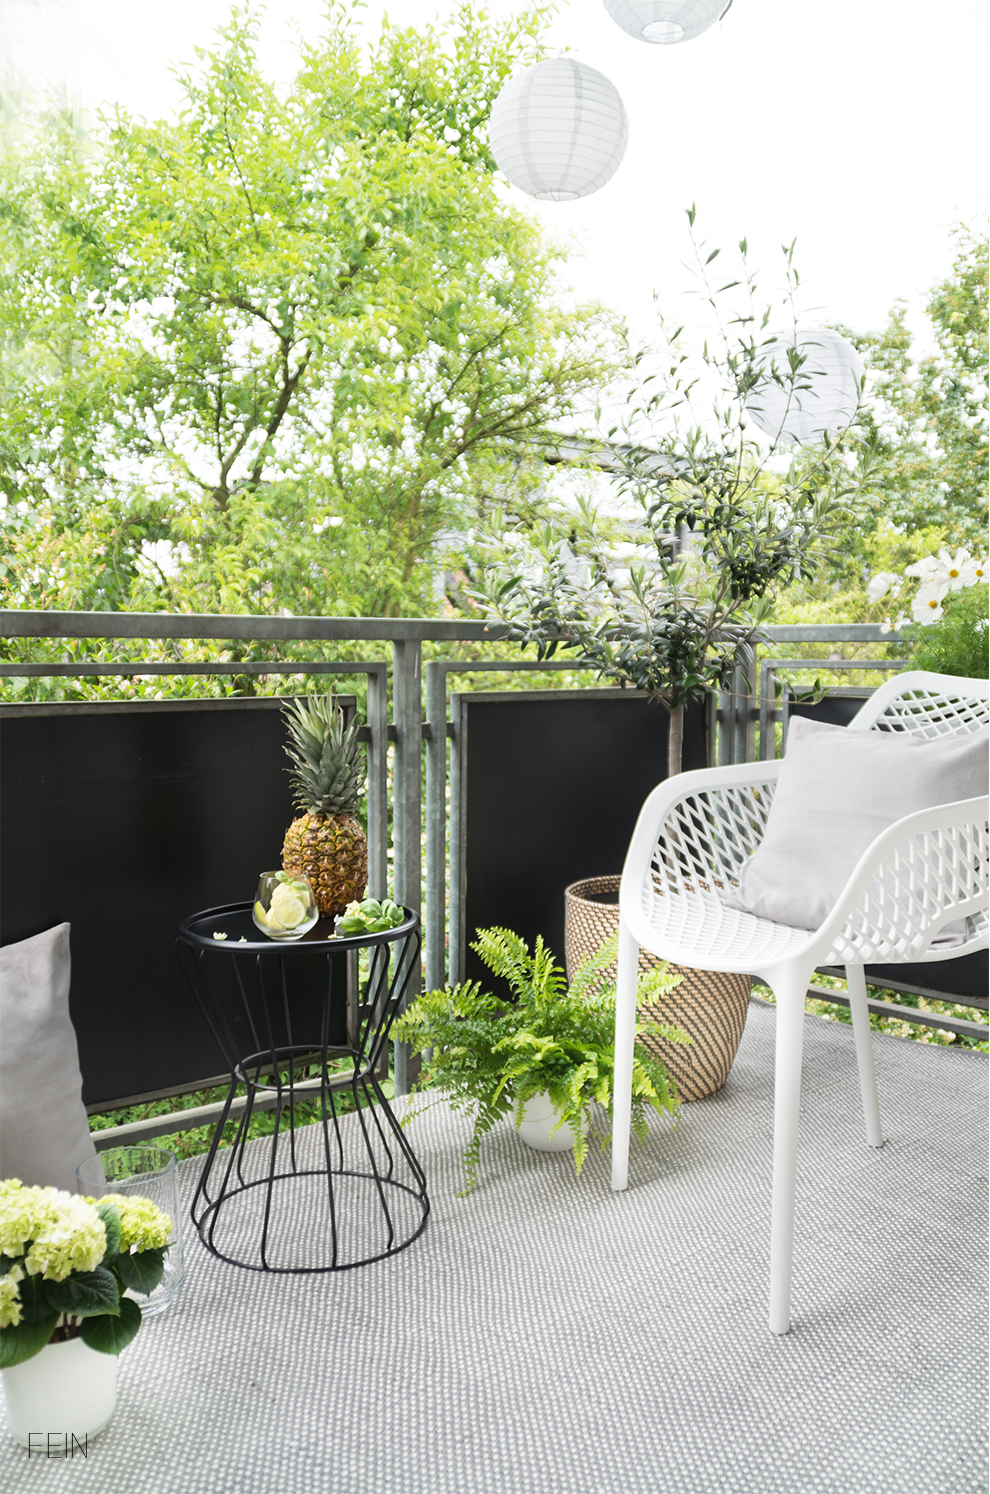 sommer auf dem balkon mit leckeren abk hlungen. Black Bedroom Furniture Sets. Home Design Ideas